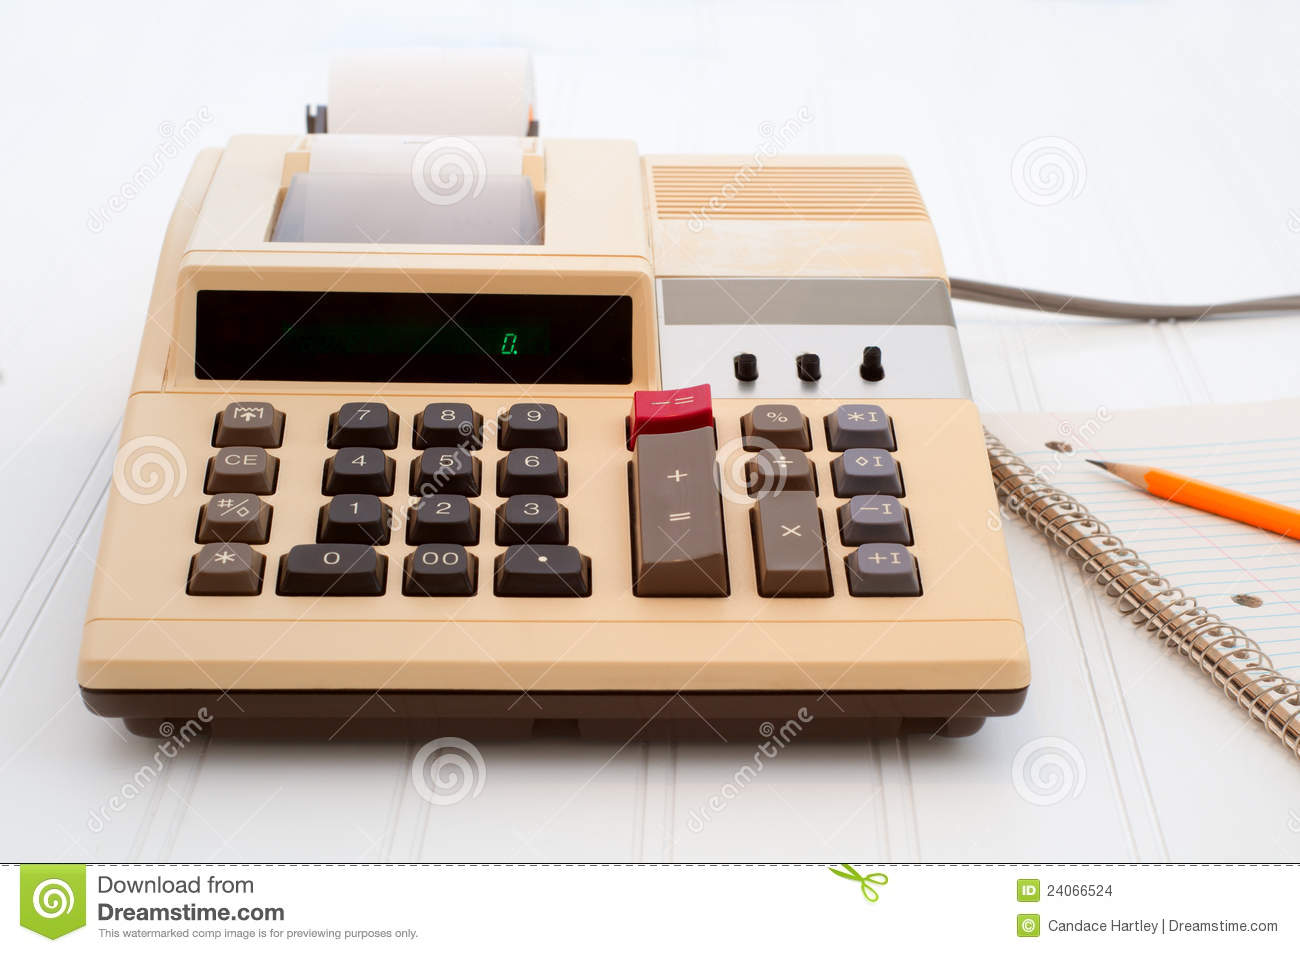 An old electric calculator on a white bead board surface with a pad of